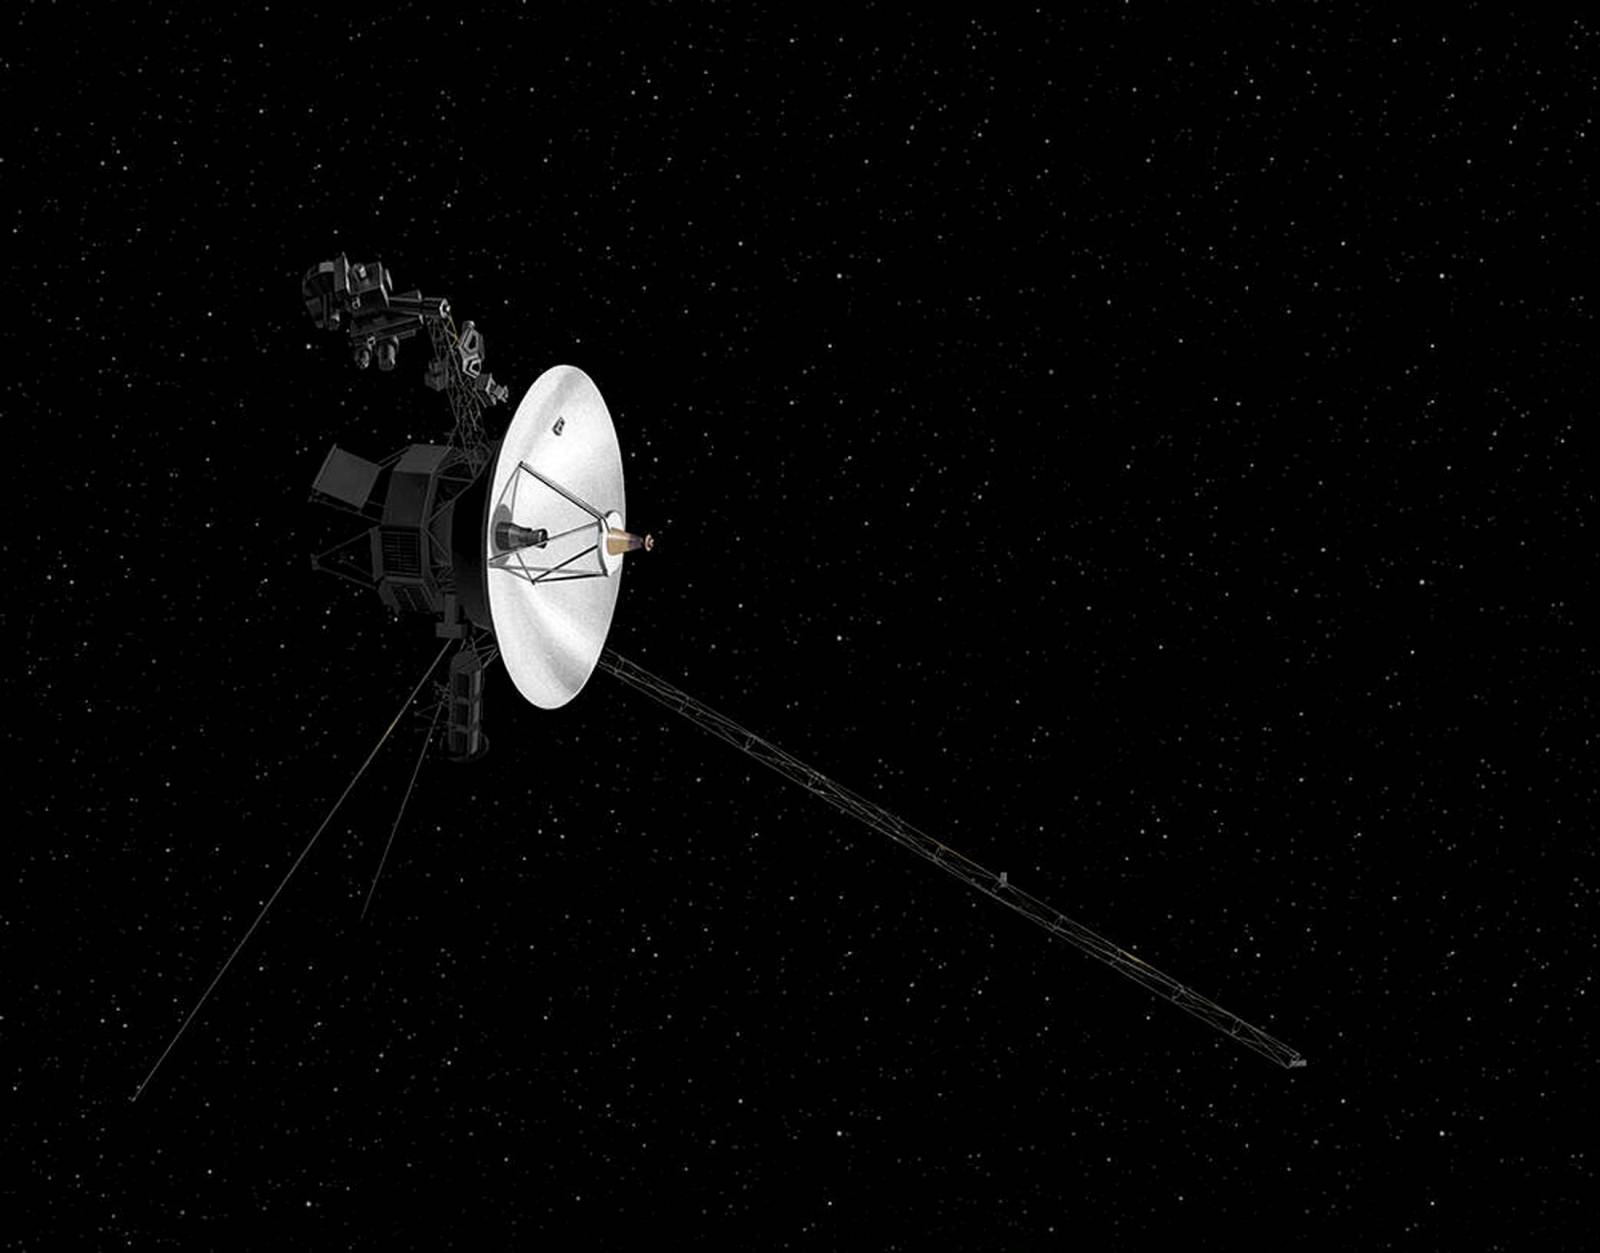 FILE PHOTO: An illustration of NASA's Voyager spacecraft in space